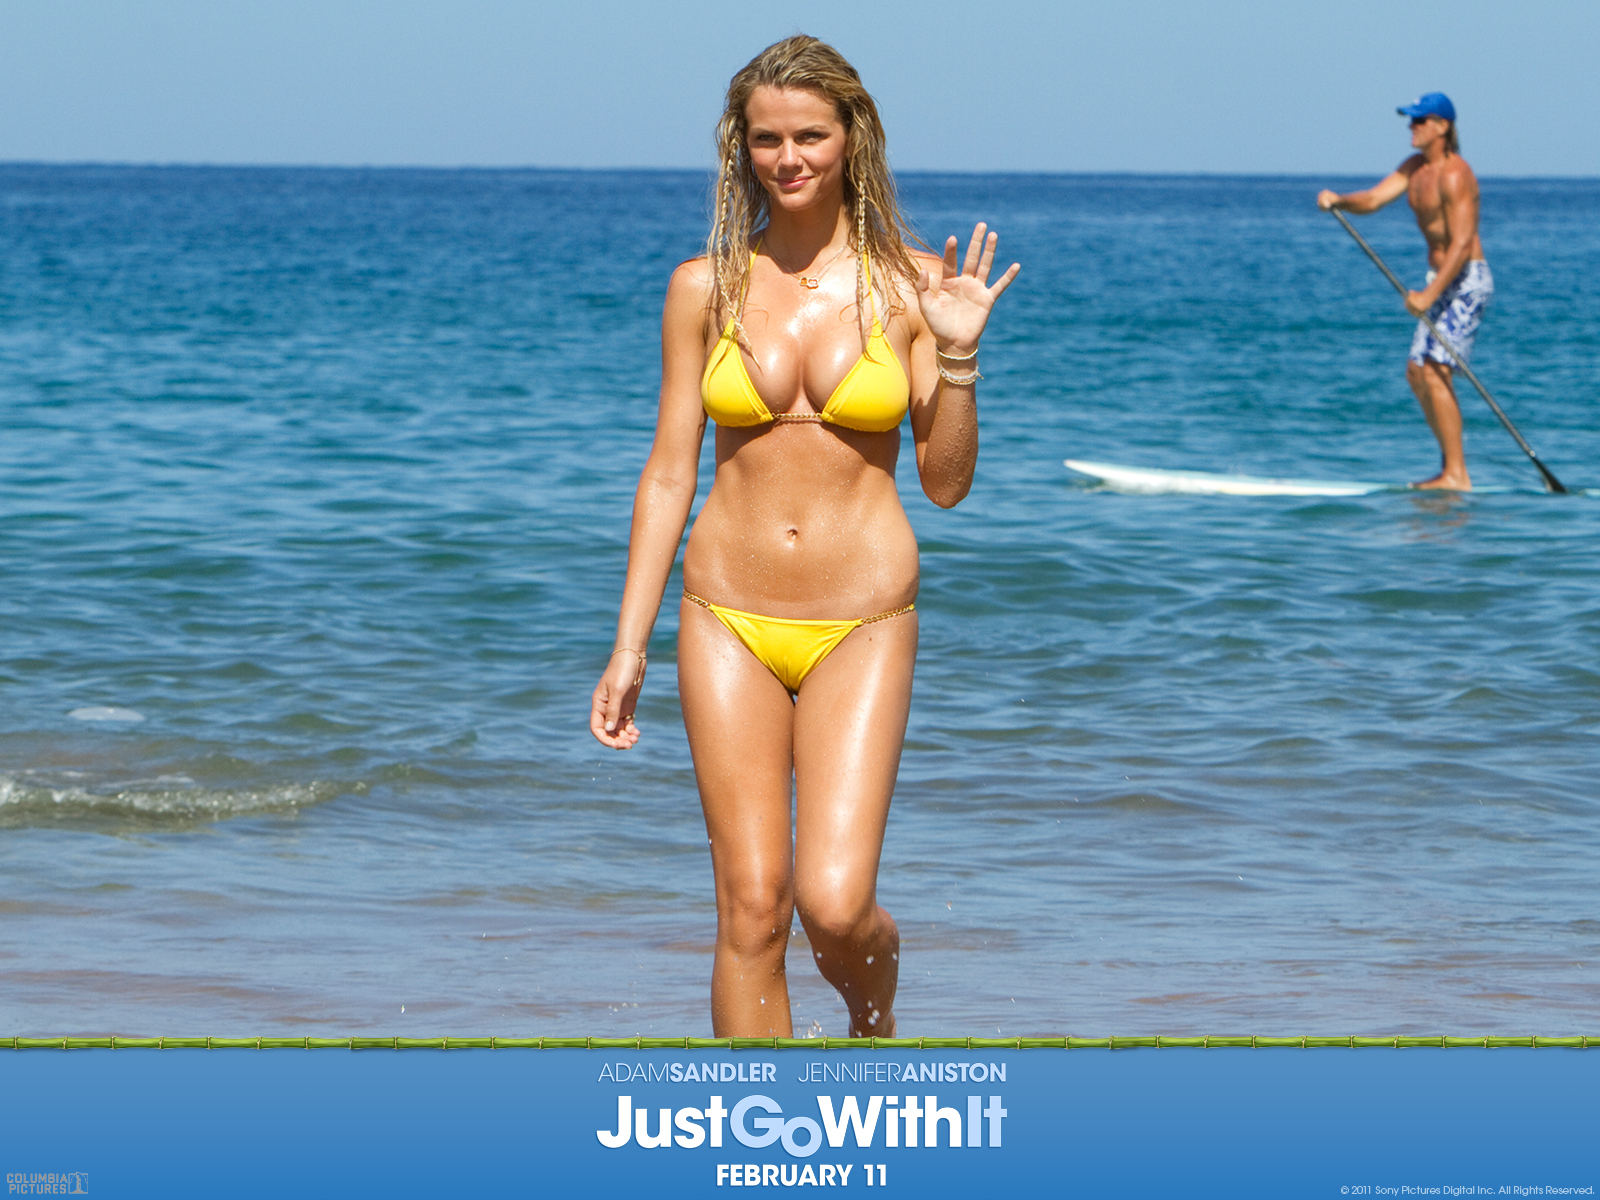 http://1.bp.blogspot.com/-Oj7iAflS5DE/TX5fYutq_QI/AAAAAAAABYE/_jEy6c5XMXA/s1600/brooklyn-decker-just-go-with-it.jpg